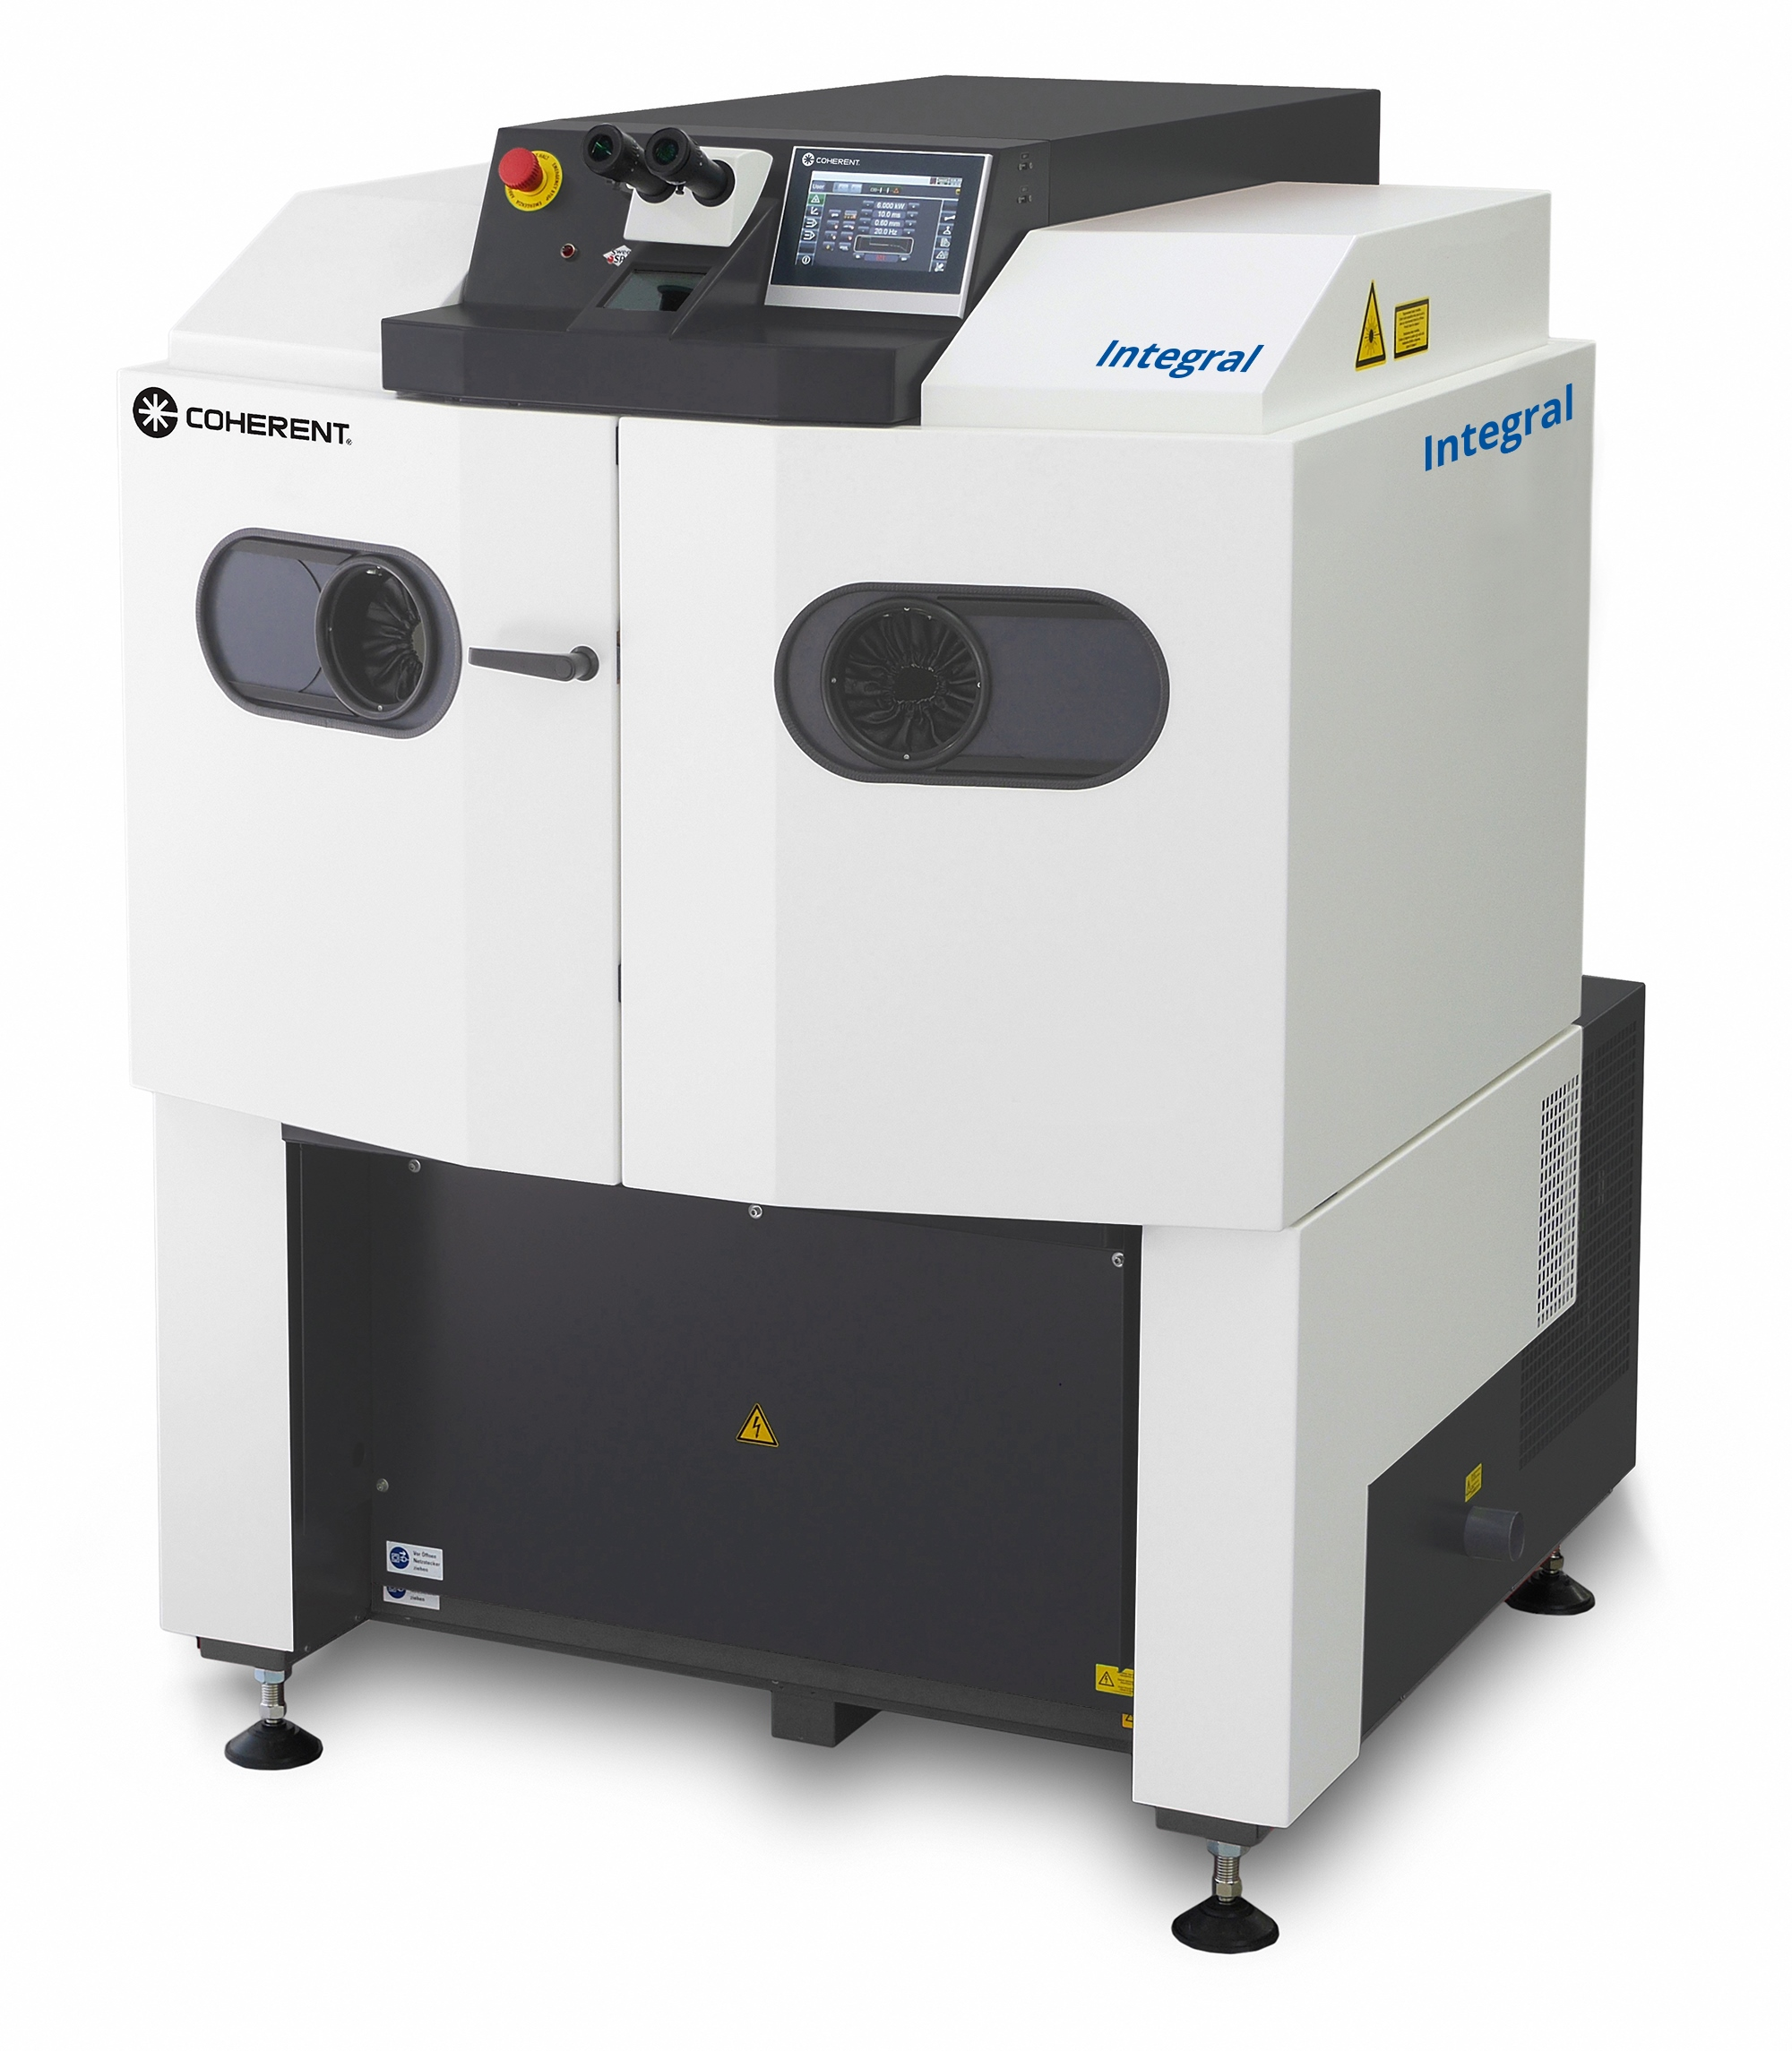 Integral - Laser Welding System for Heavy Workpieces | Coherent